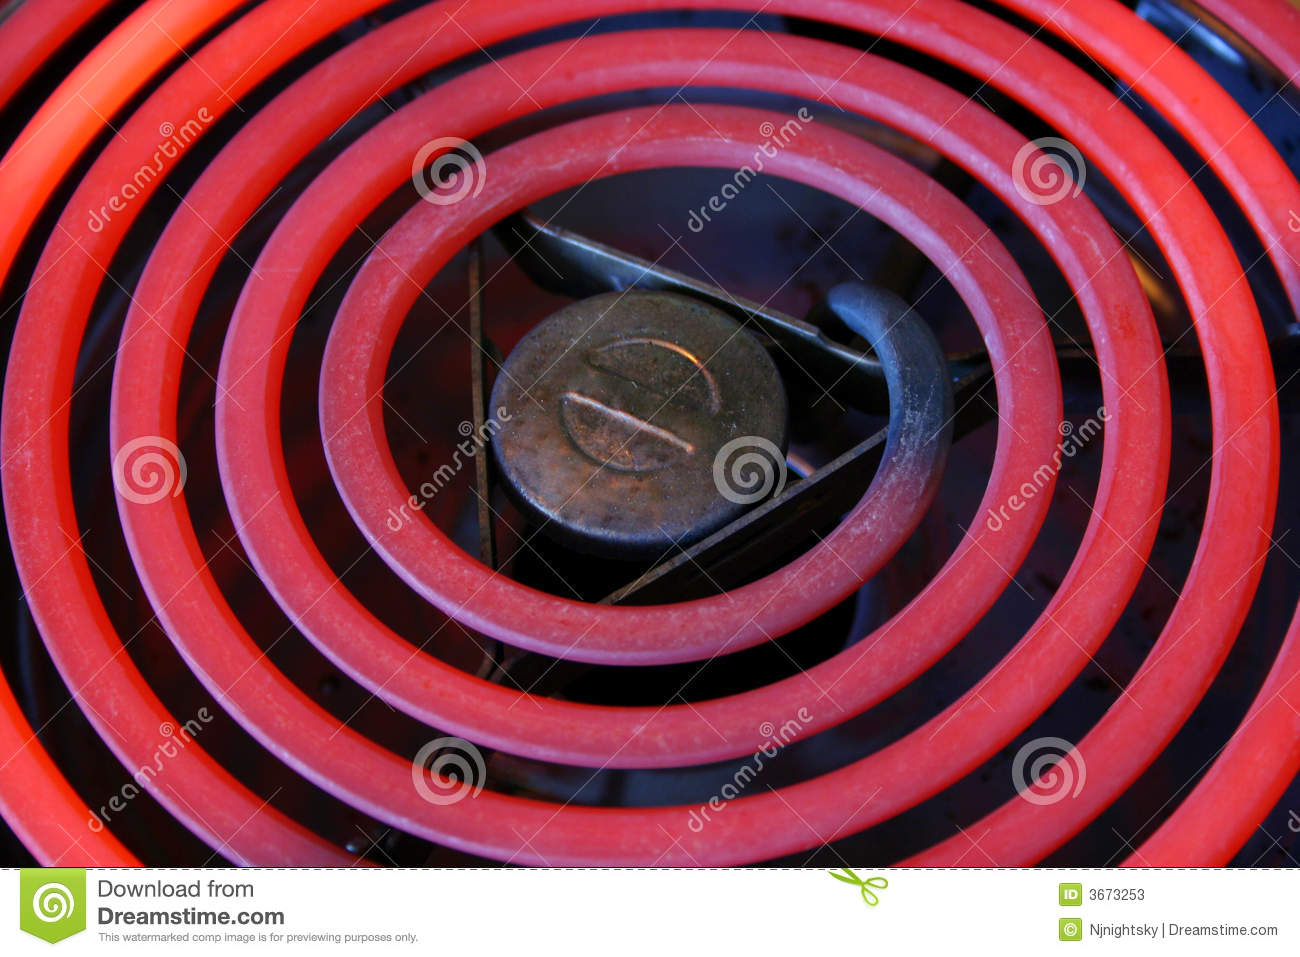 Red Hot Electric Stove Coils Stock Photos Image 3673253